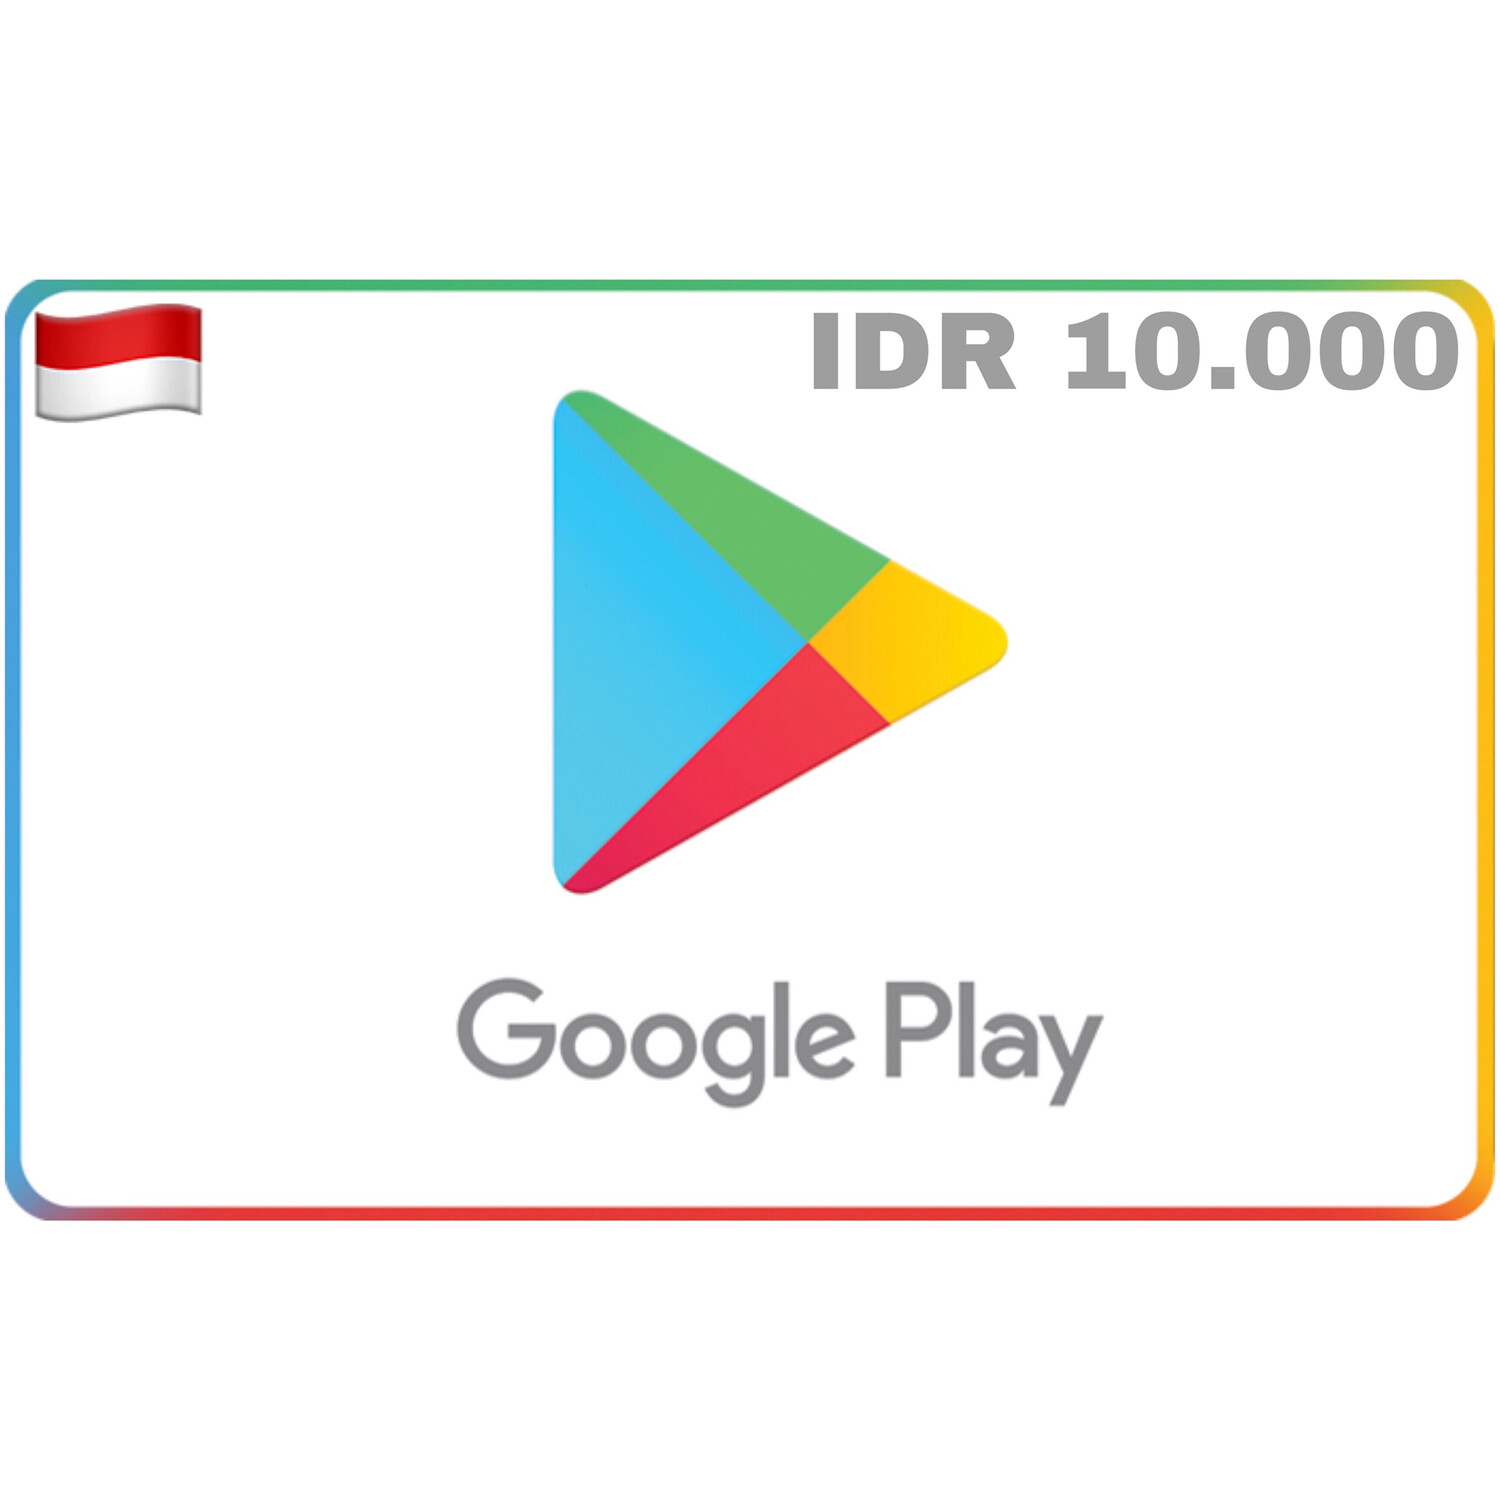 Google Play Indonesia IDR 10.000